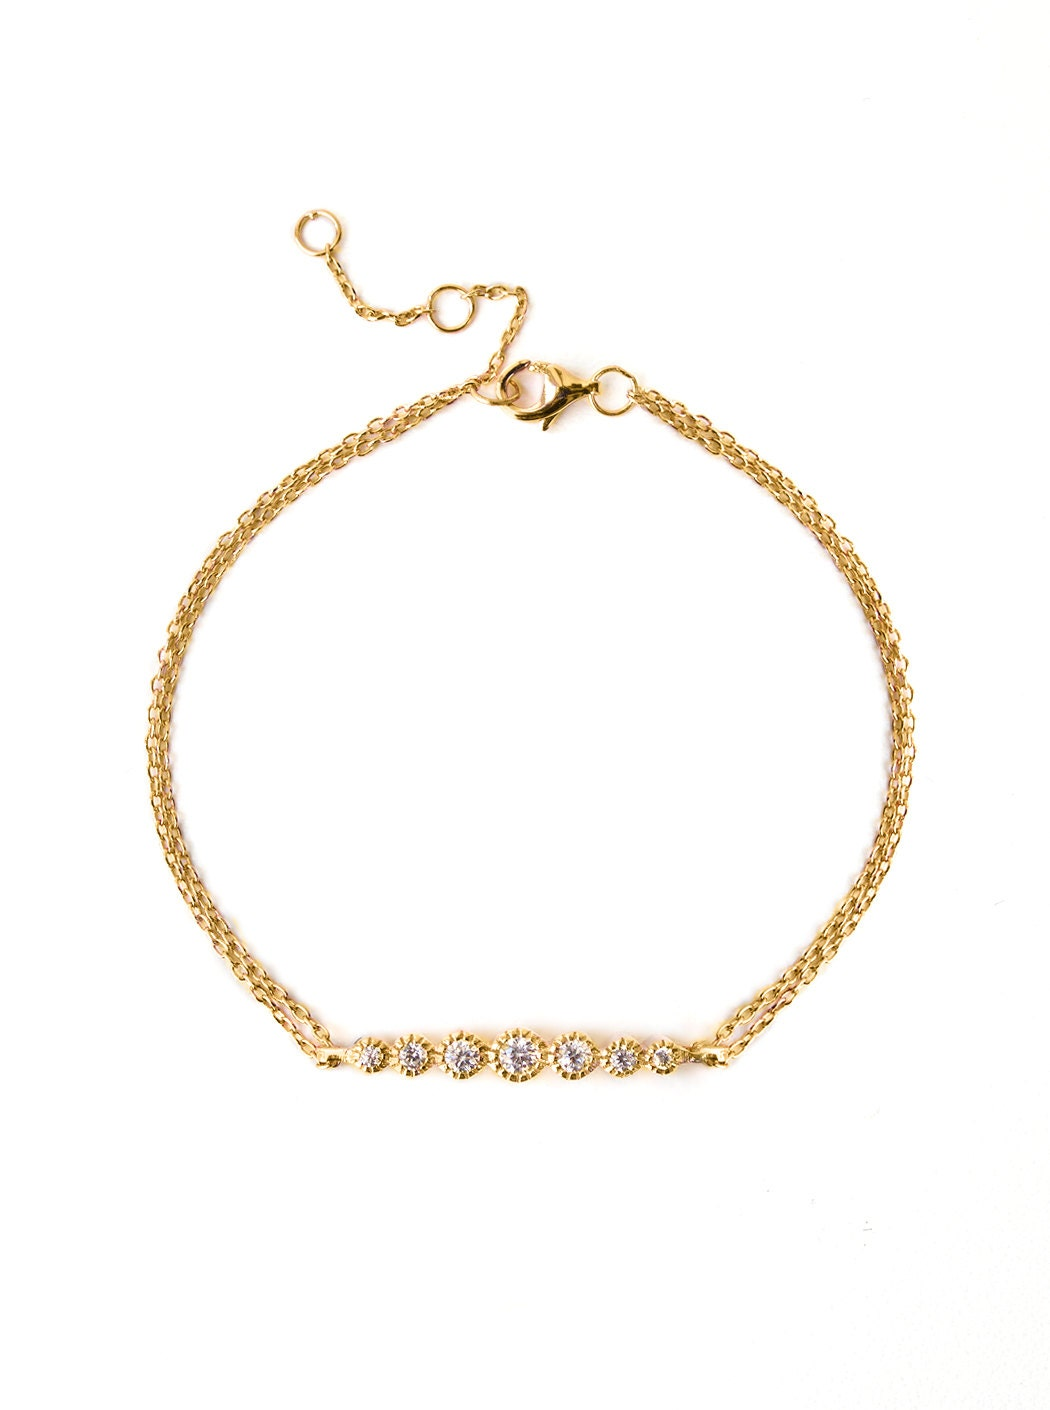 gift fullxfull bracelet p minimalist il layering jewelry simple her for delicate dainty filled gold